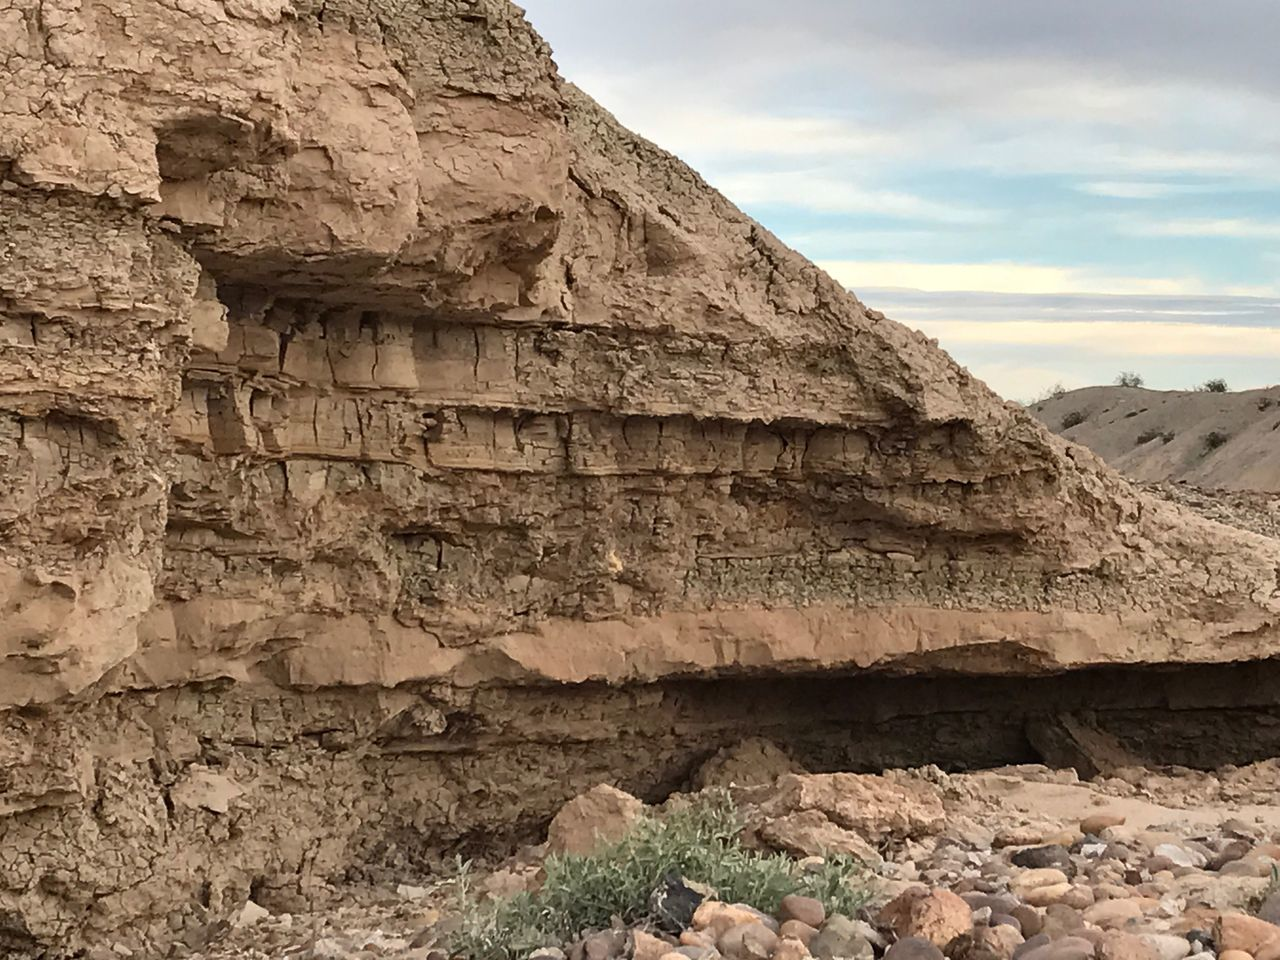 Desert Landscape Arid Climate Geological Landscape Physical Geography Backgrounds Textures & Surfaces No Filter, No Edit, Just Photography Dry Wash Geology Rock - Object Rock Formation Nature Textured  Low Angle View Cliff No People Beauty In Nature EyeEm Nature Lover Sky Scenics Outdoors Day